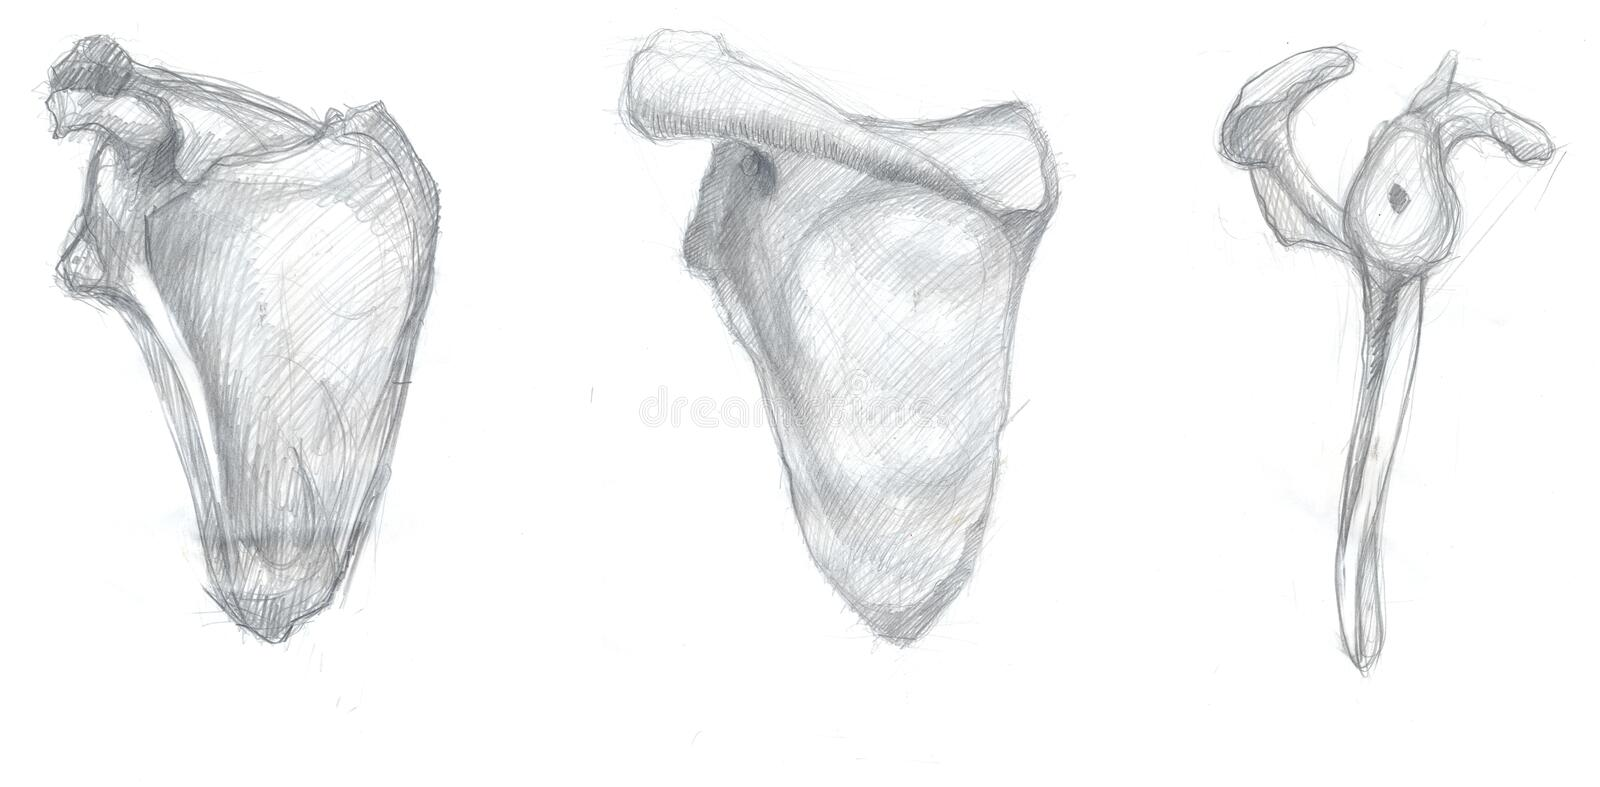 Scapula views. Hand drawn illustrations of scapula bone, original artistic pencil sketches on paper, dorsal, ventral and lateral view stock illustration